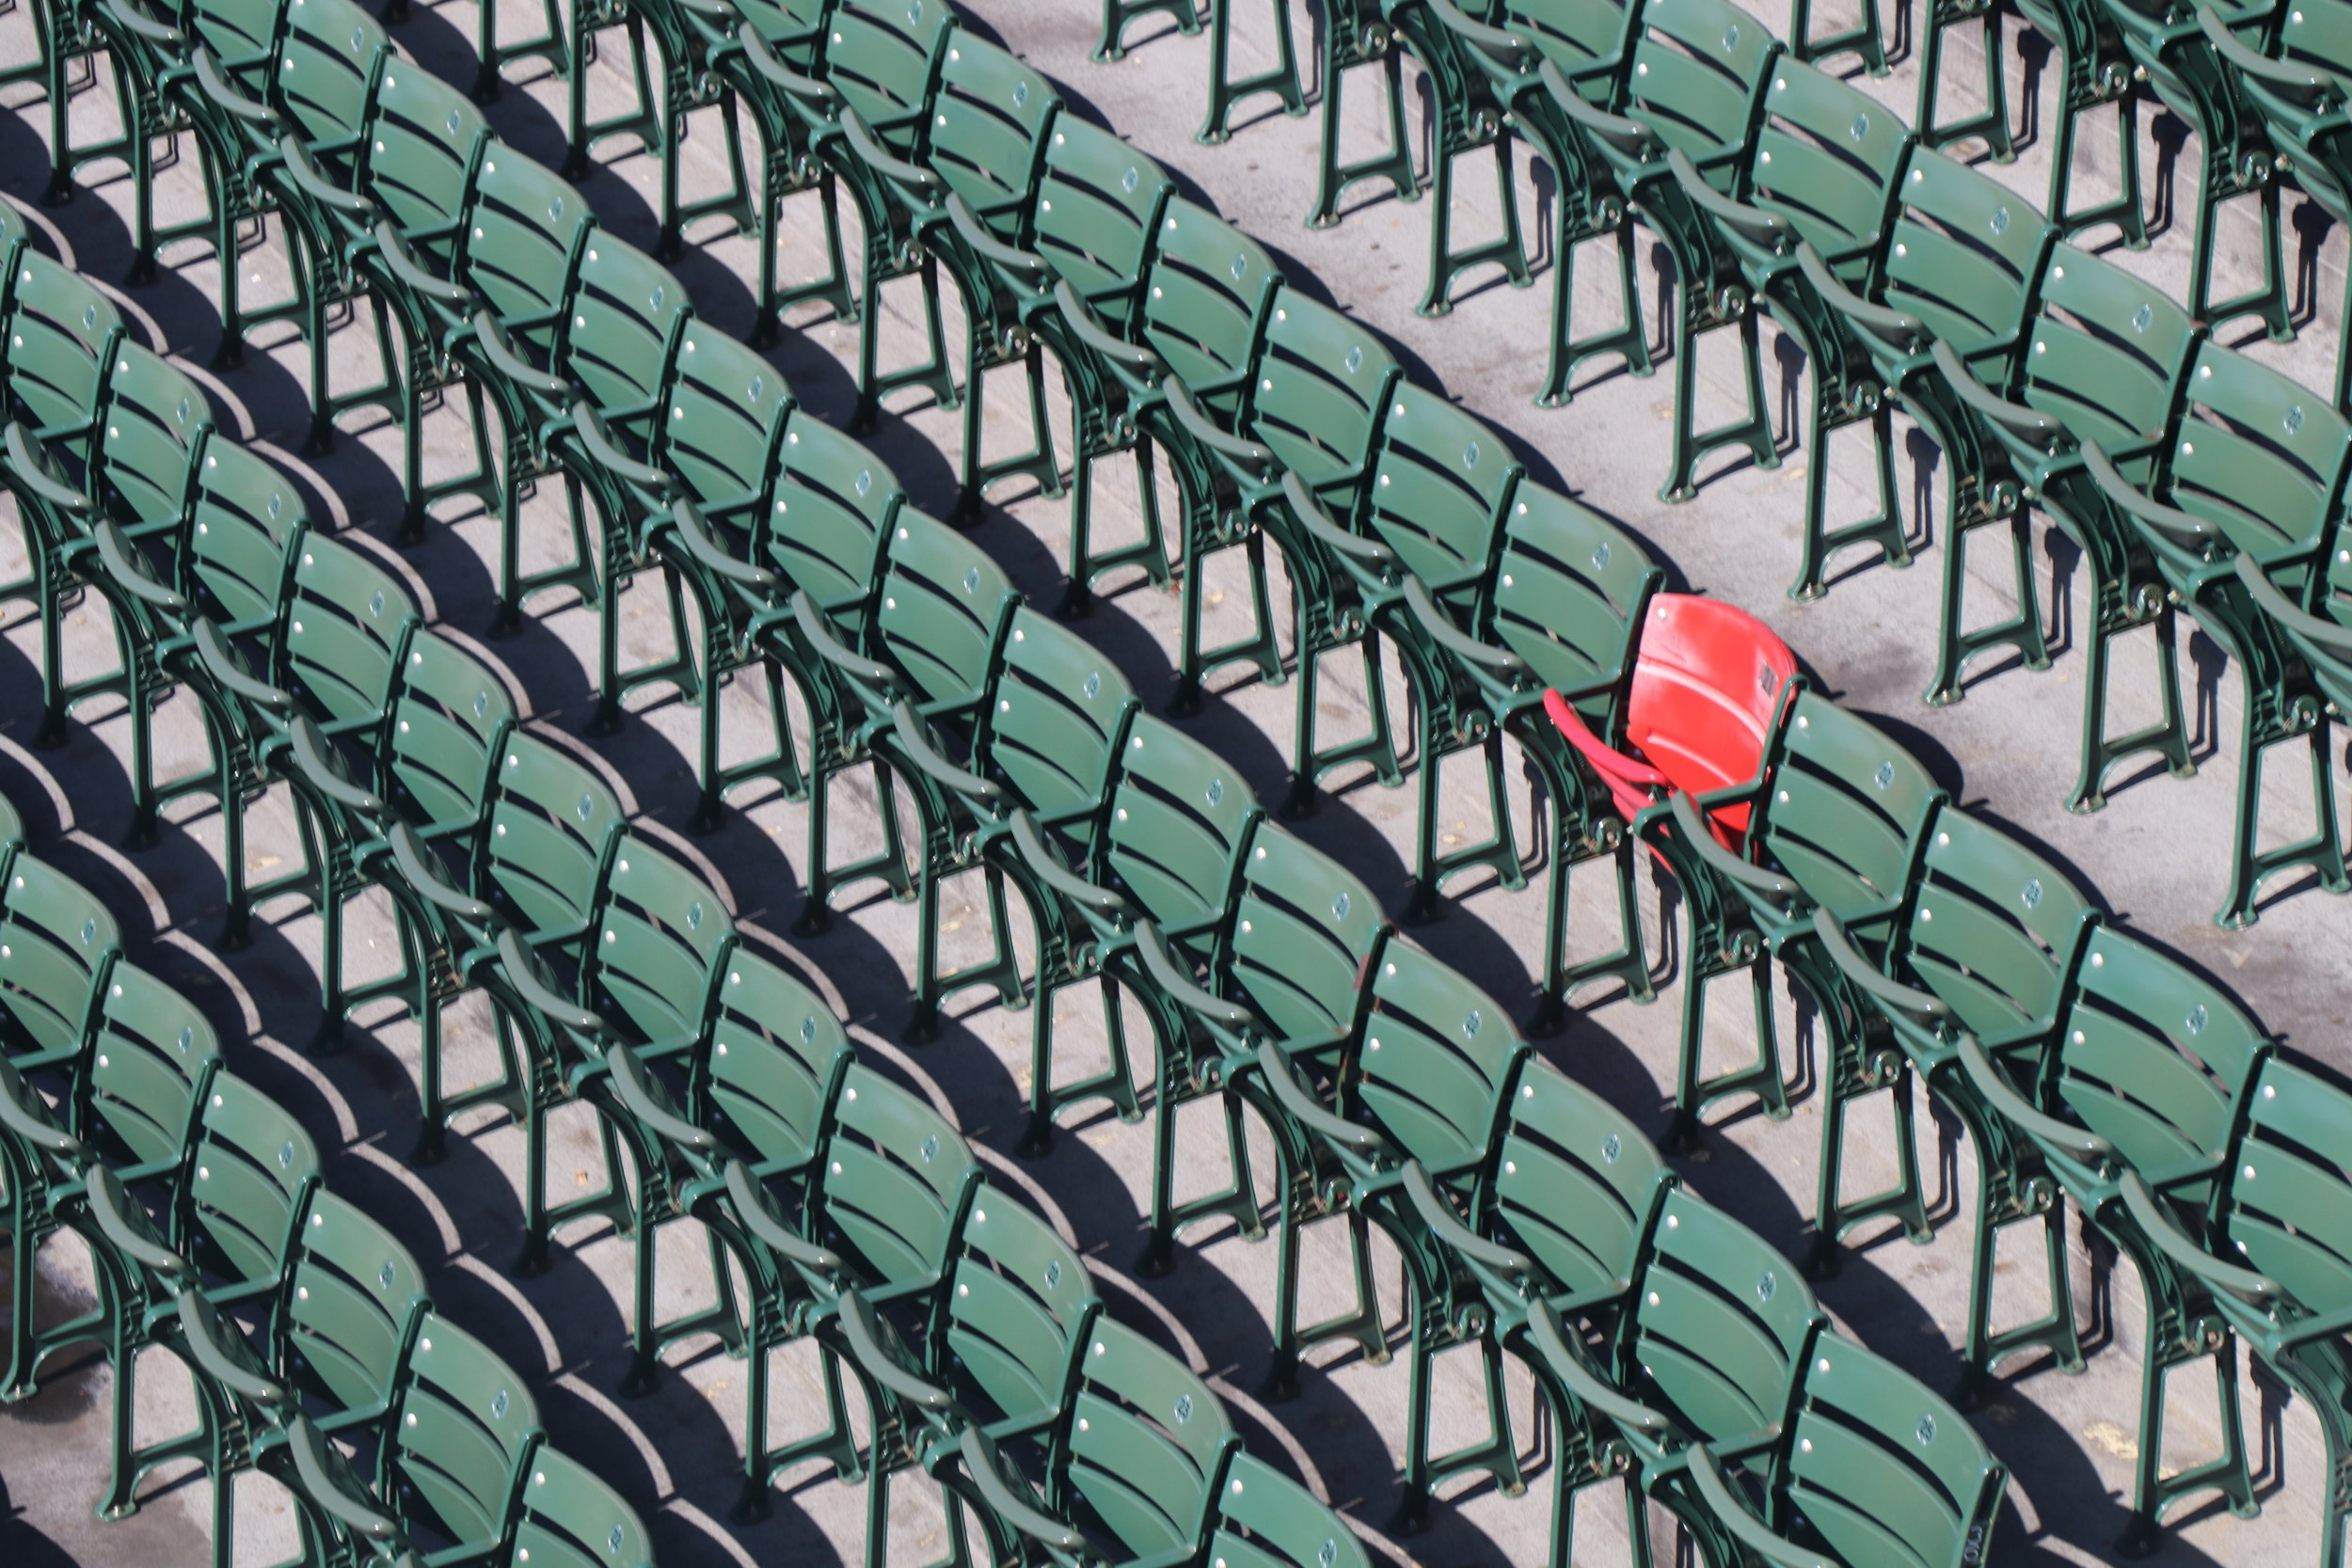 Only red seat in the outfield seating - farthest home run hit in Fenway - hit by Ted Williams